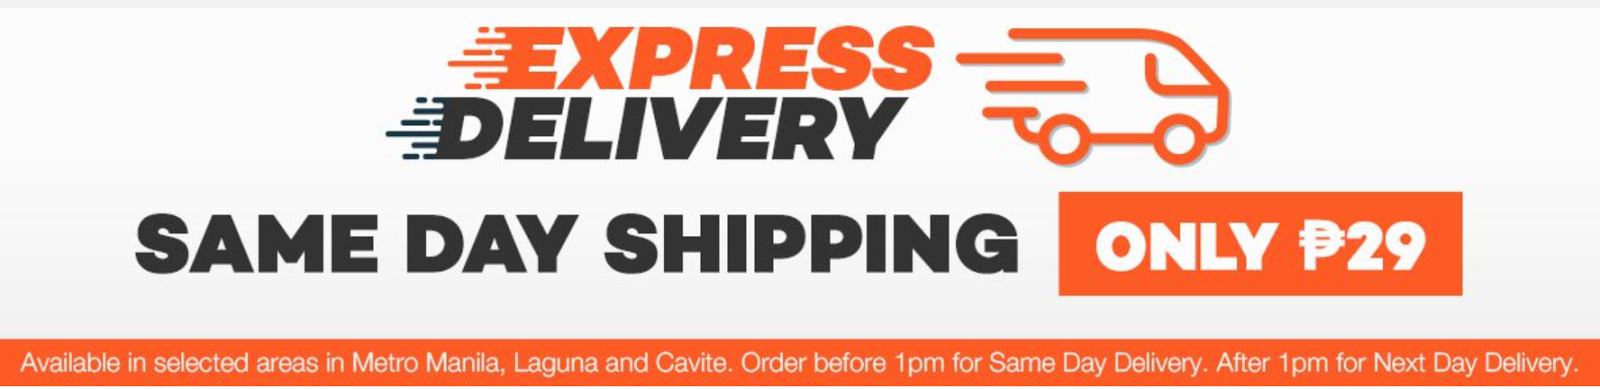 SAME DAY DELIVERY Only Costs P29 Pesos Available In Selected Areas Metro Manila Laguna And Cavite Orders After 1pm Are For Next Day Delivery